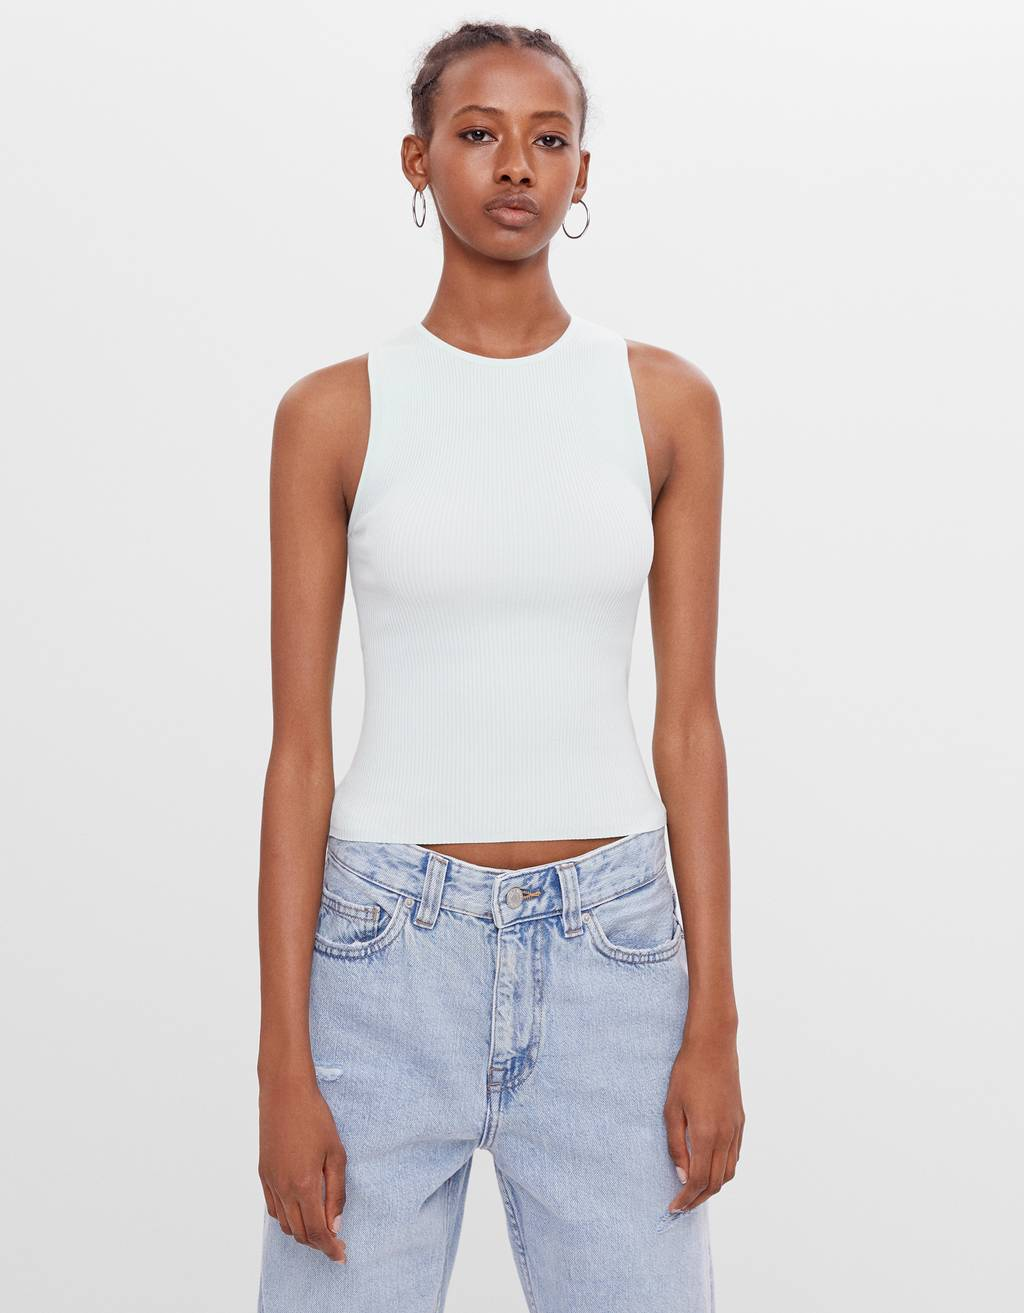 Sleeveless top with open back